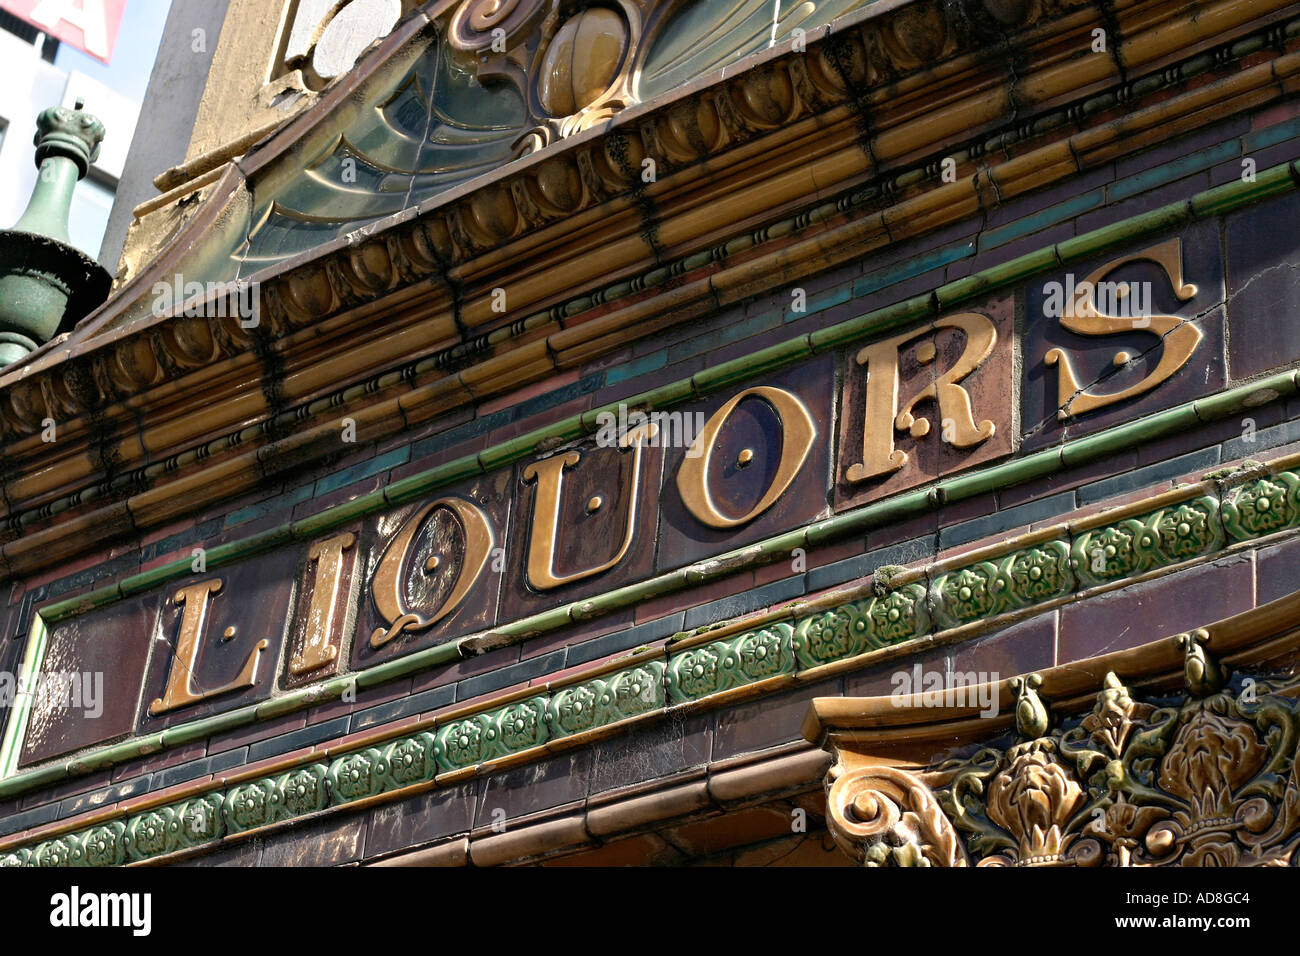 A detail of the ceramic tile work of the front facade of the famous Belfast landmark of Crown Liquor Saloon Bar: Liquors - Stock Image